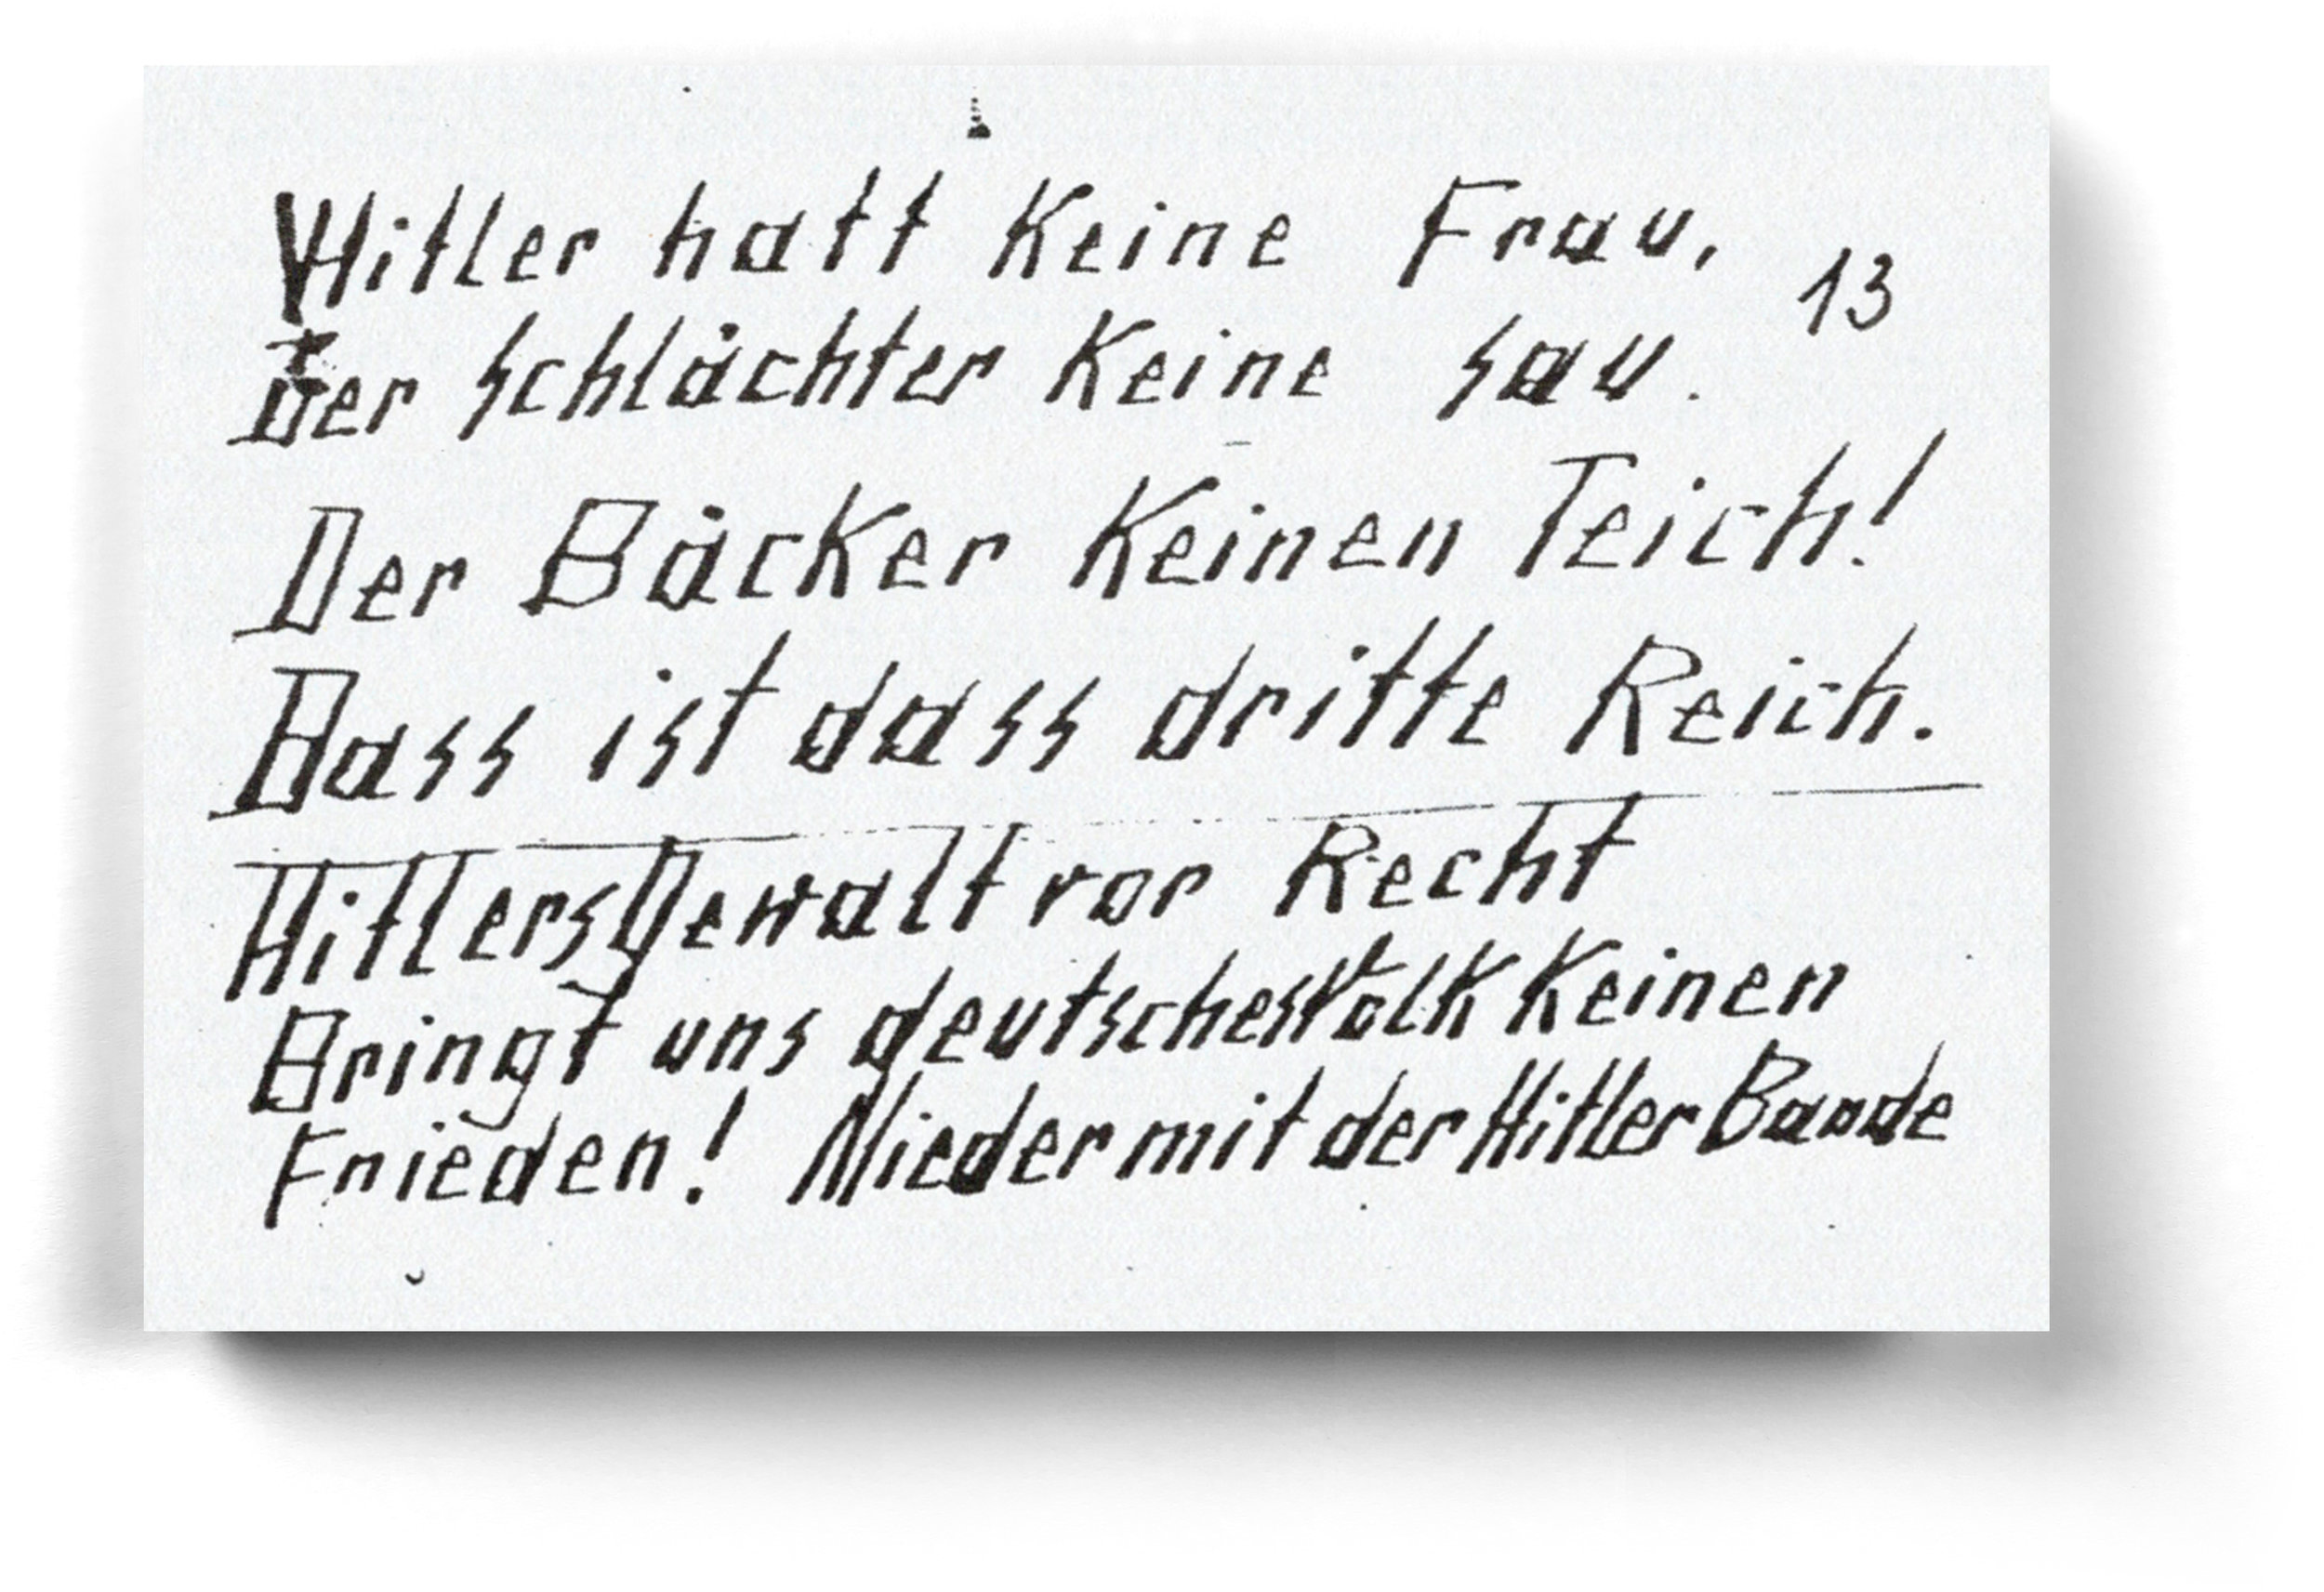 german-postcard-no-peace.jpg